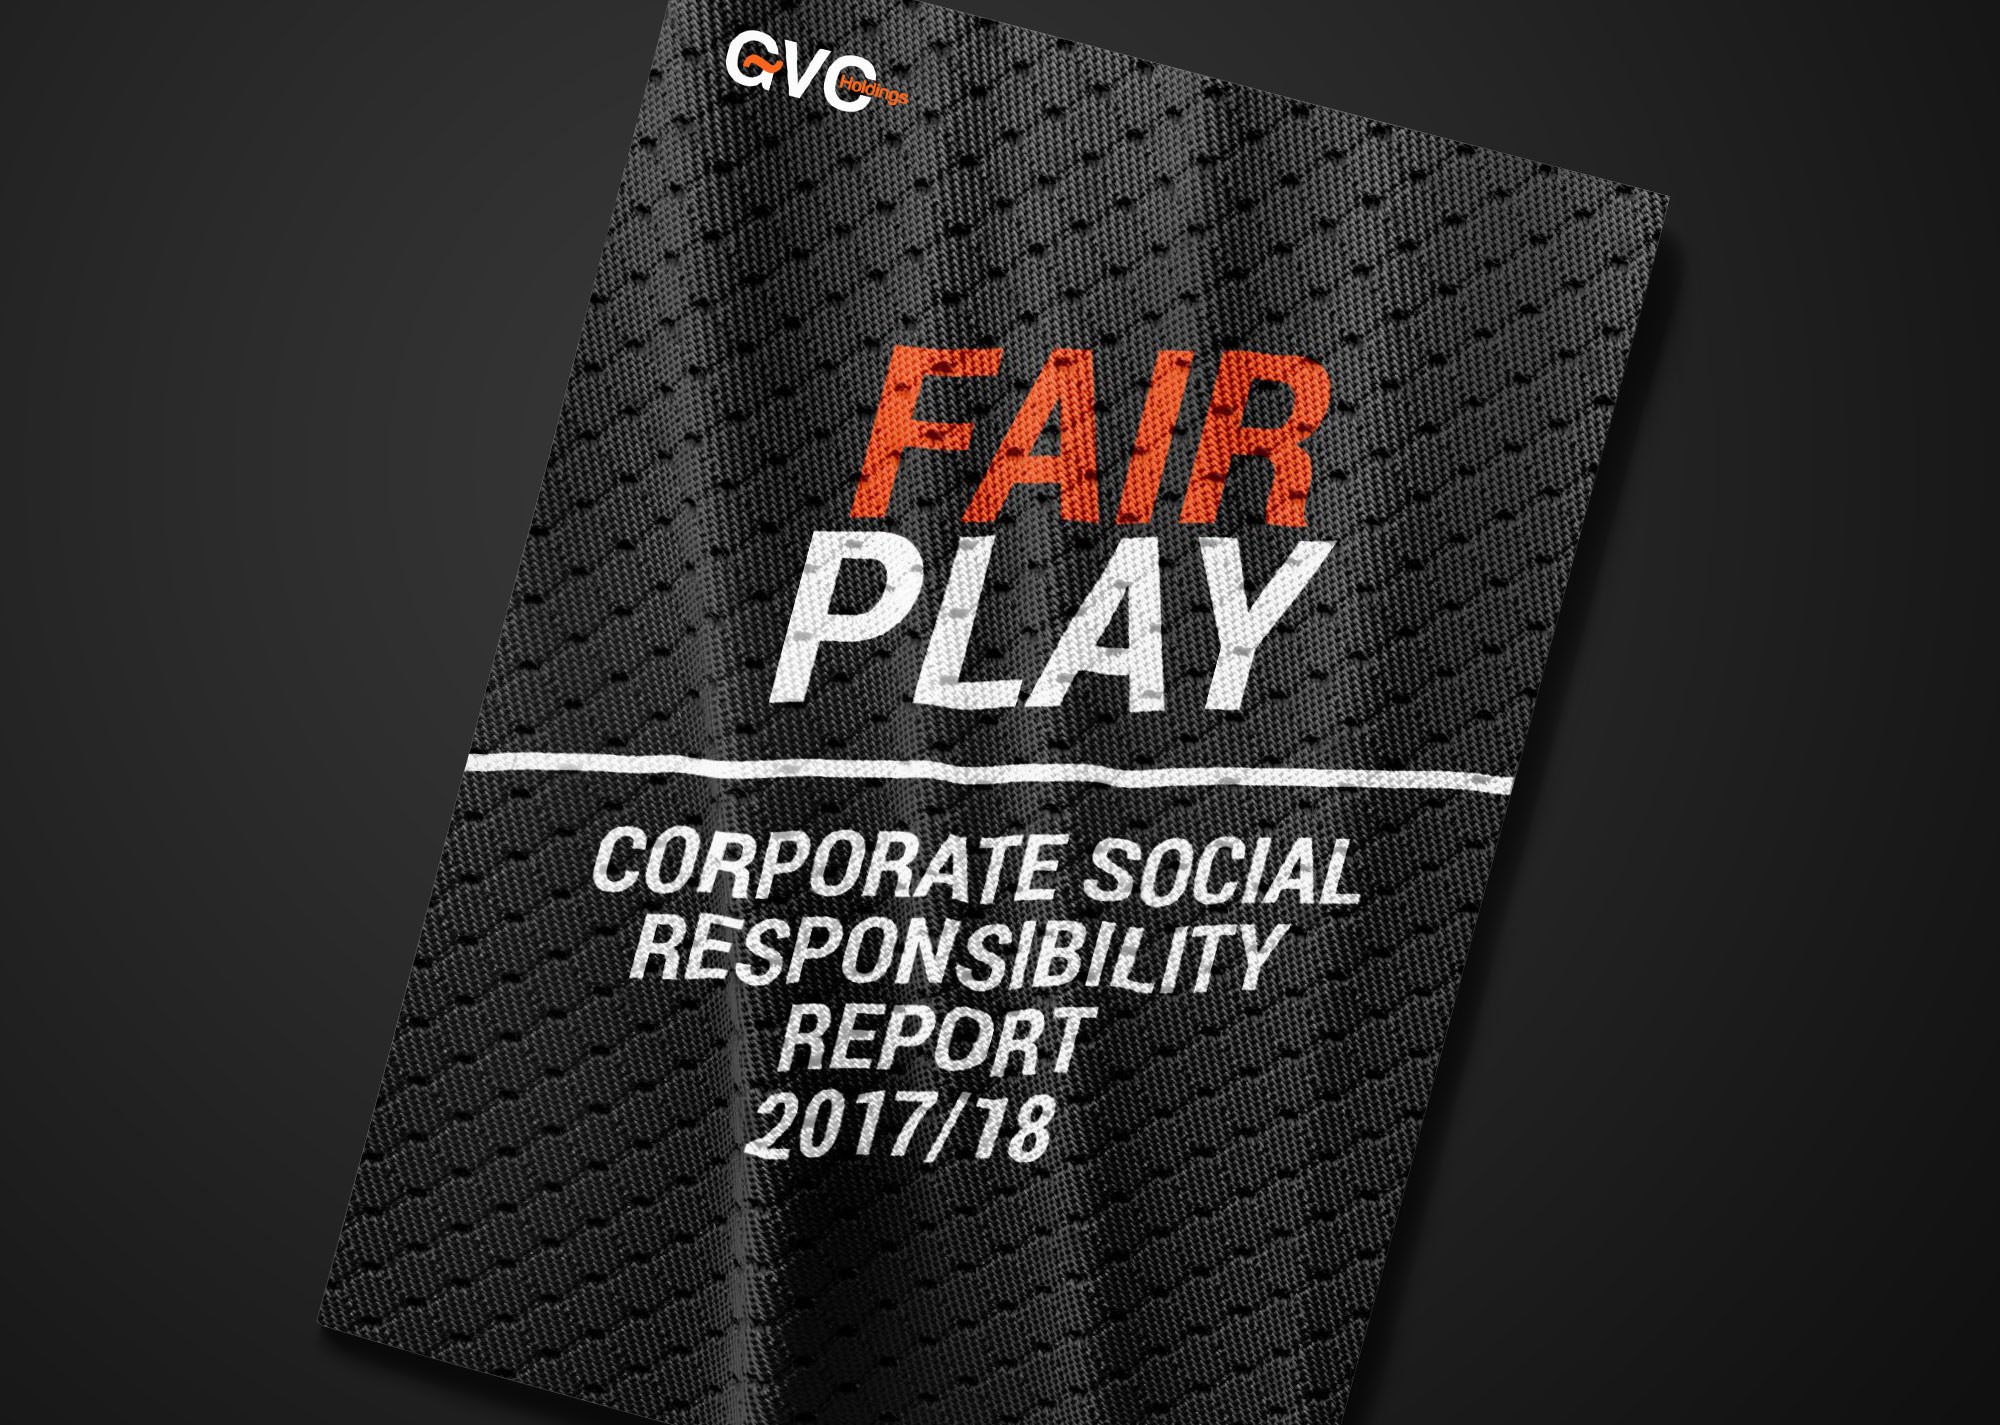 GVC corporate responsibility Report